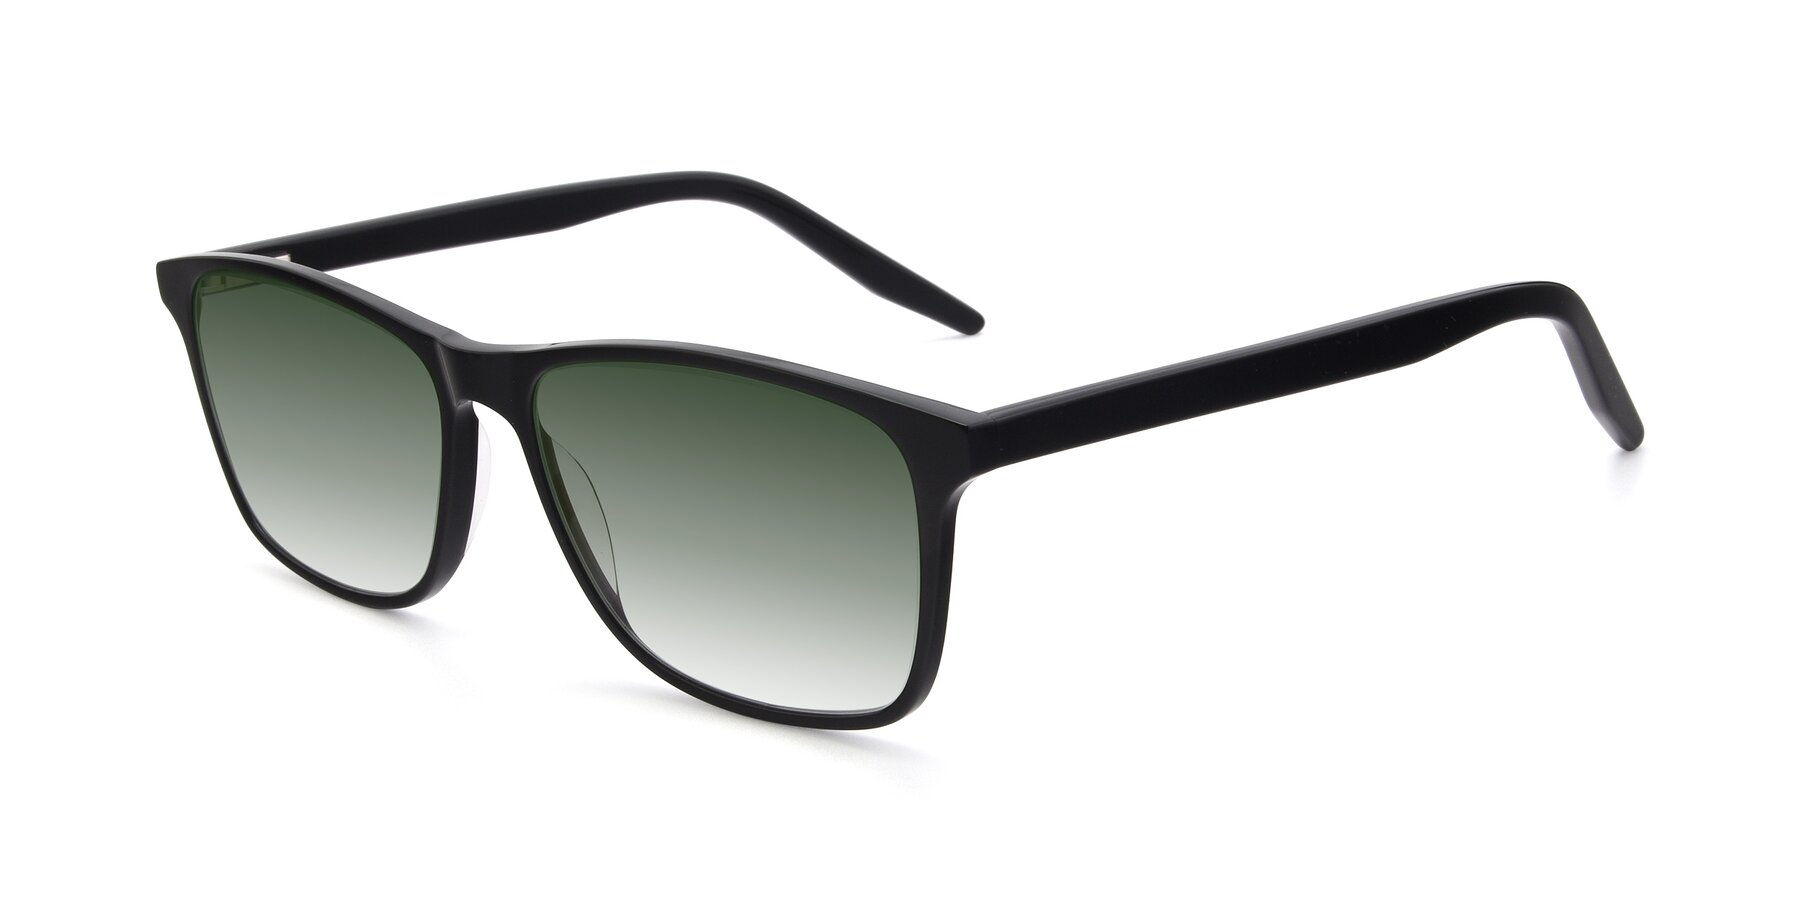 Angle of 17500 in Black with Green Gradient Lenses